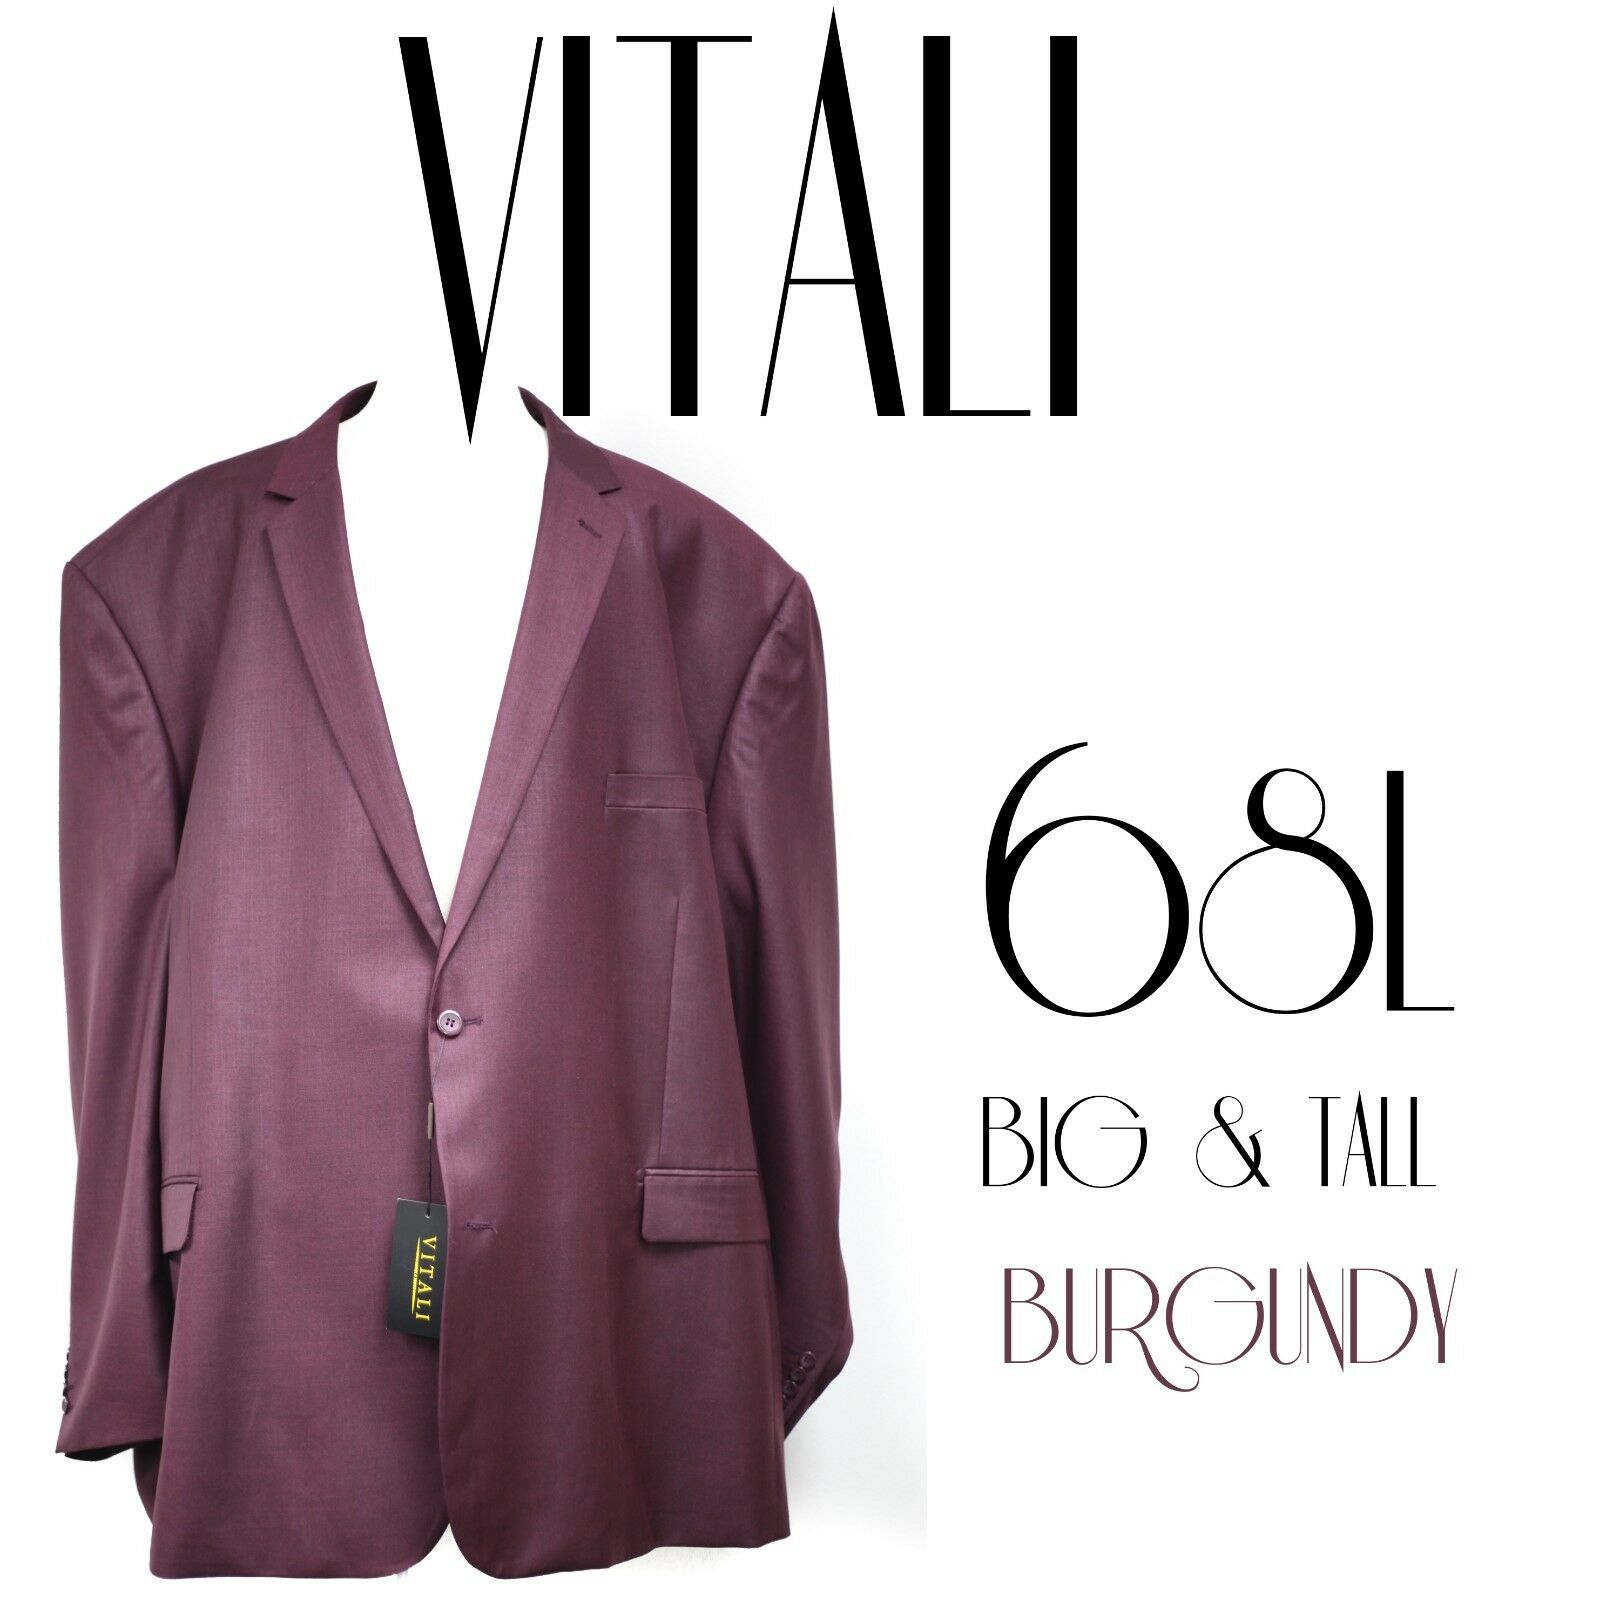 NEW Vitali Suit Super 120's Fabric Size 68L Big and Tall Classic Fit Business